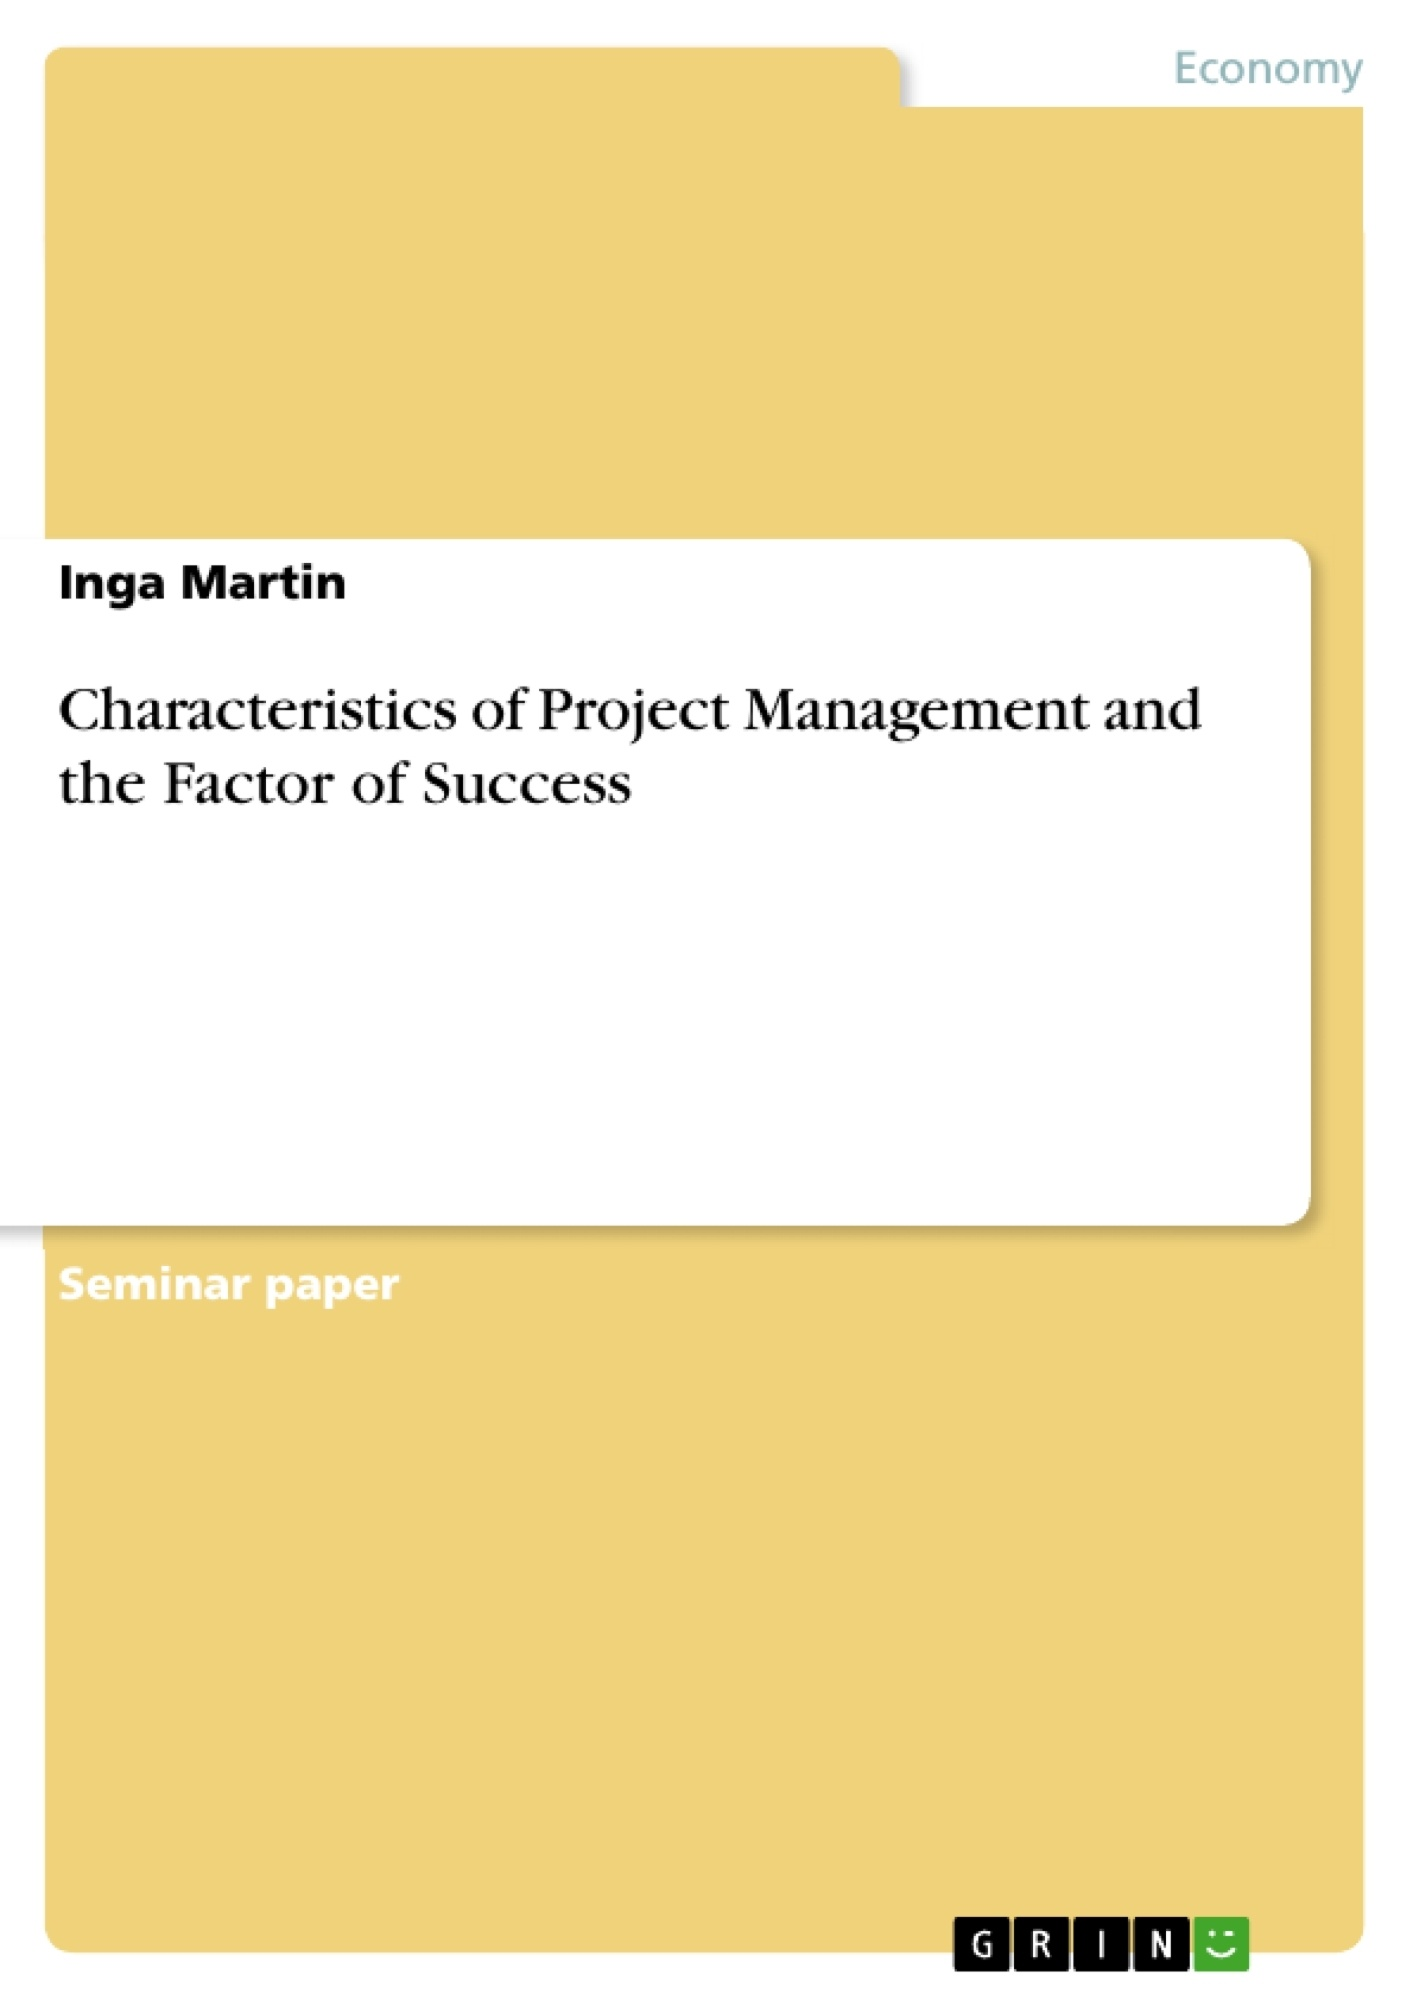 Title: Characteristics of Project Management and the Factor of Success